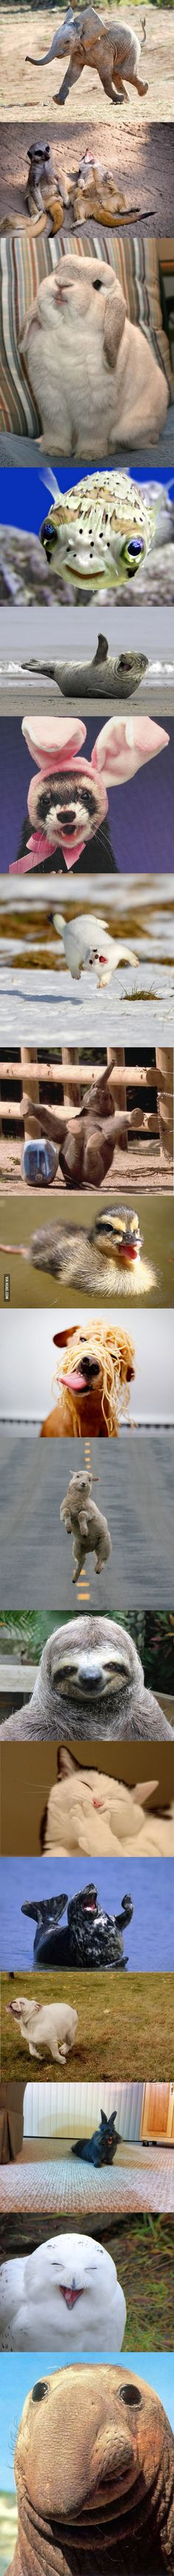 Happiest Animals In The World